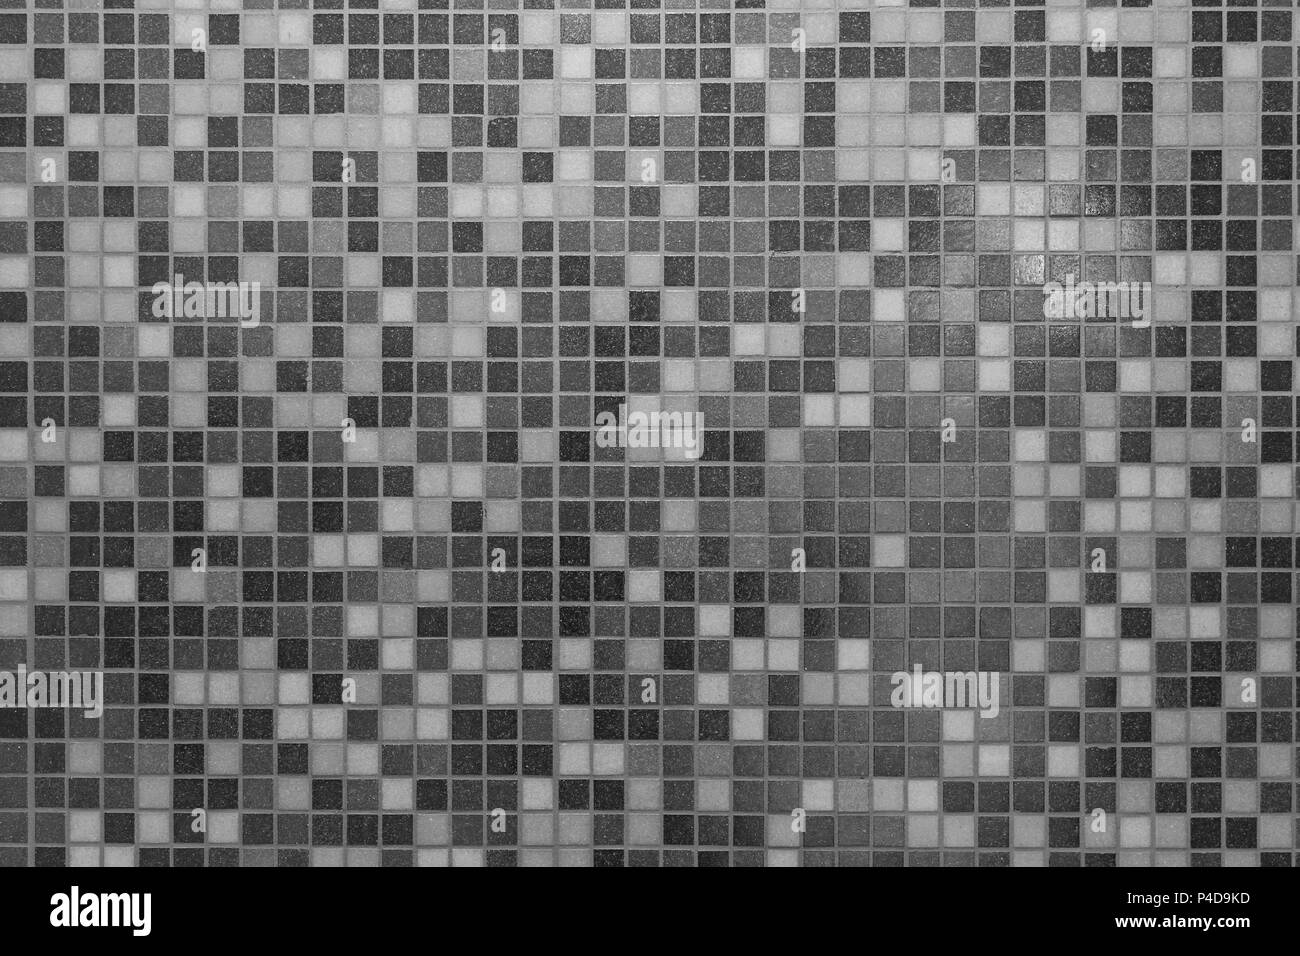 Modern mosaic tile wall background black and white tile wall texture